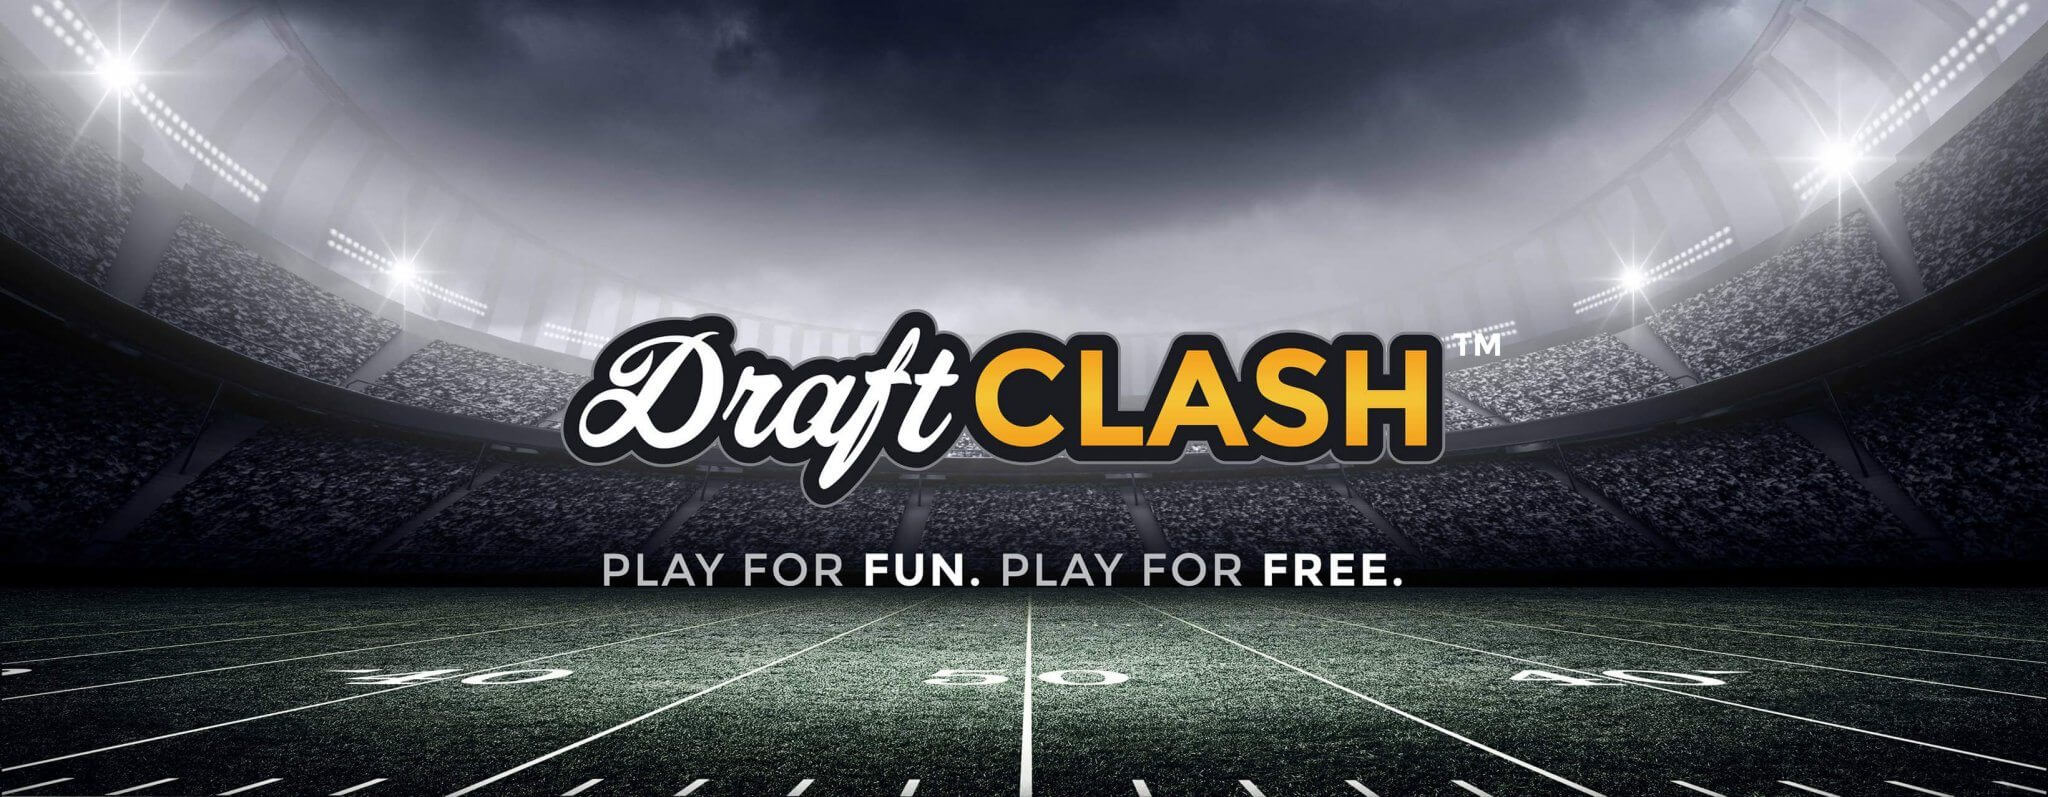 DraftClash taking daily fantasy sports gaming to the next level